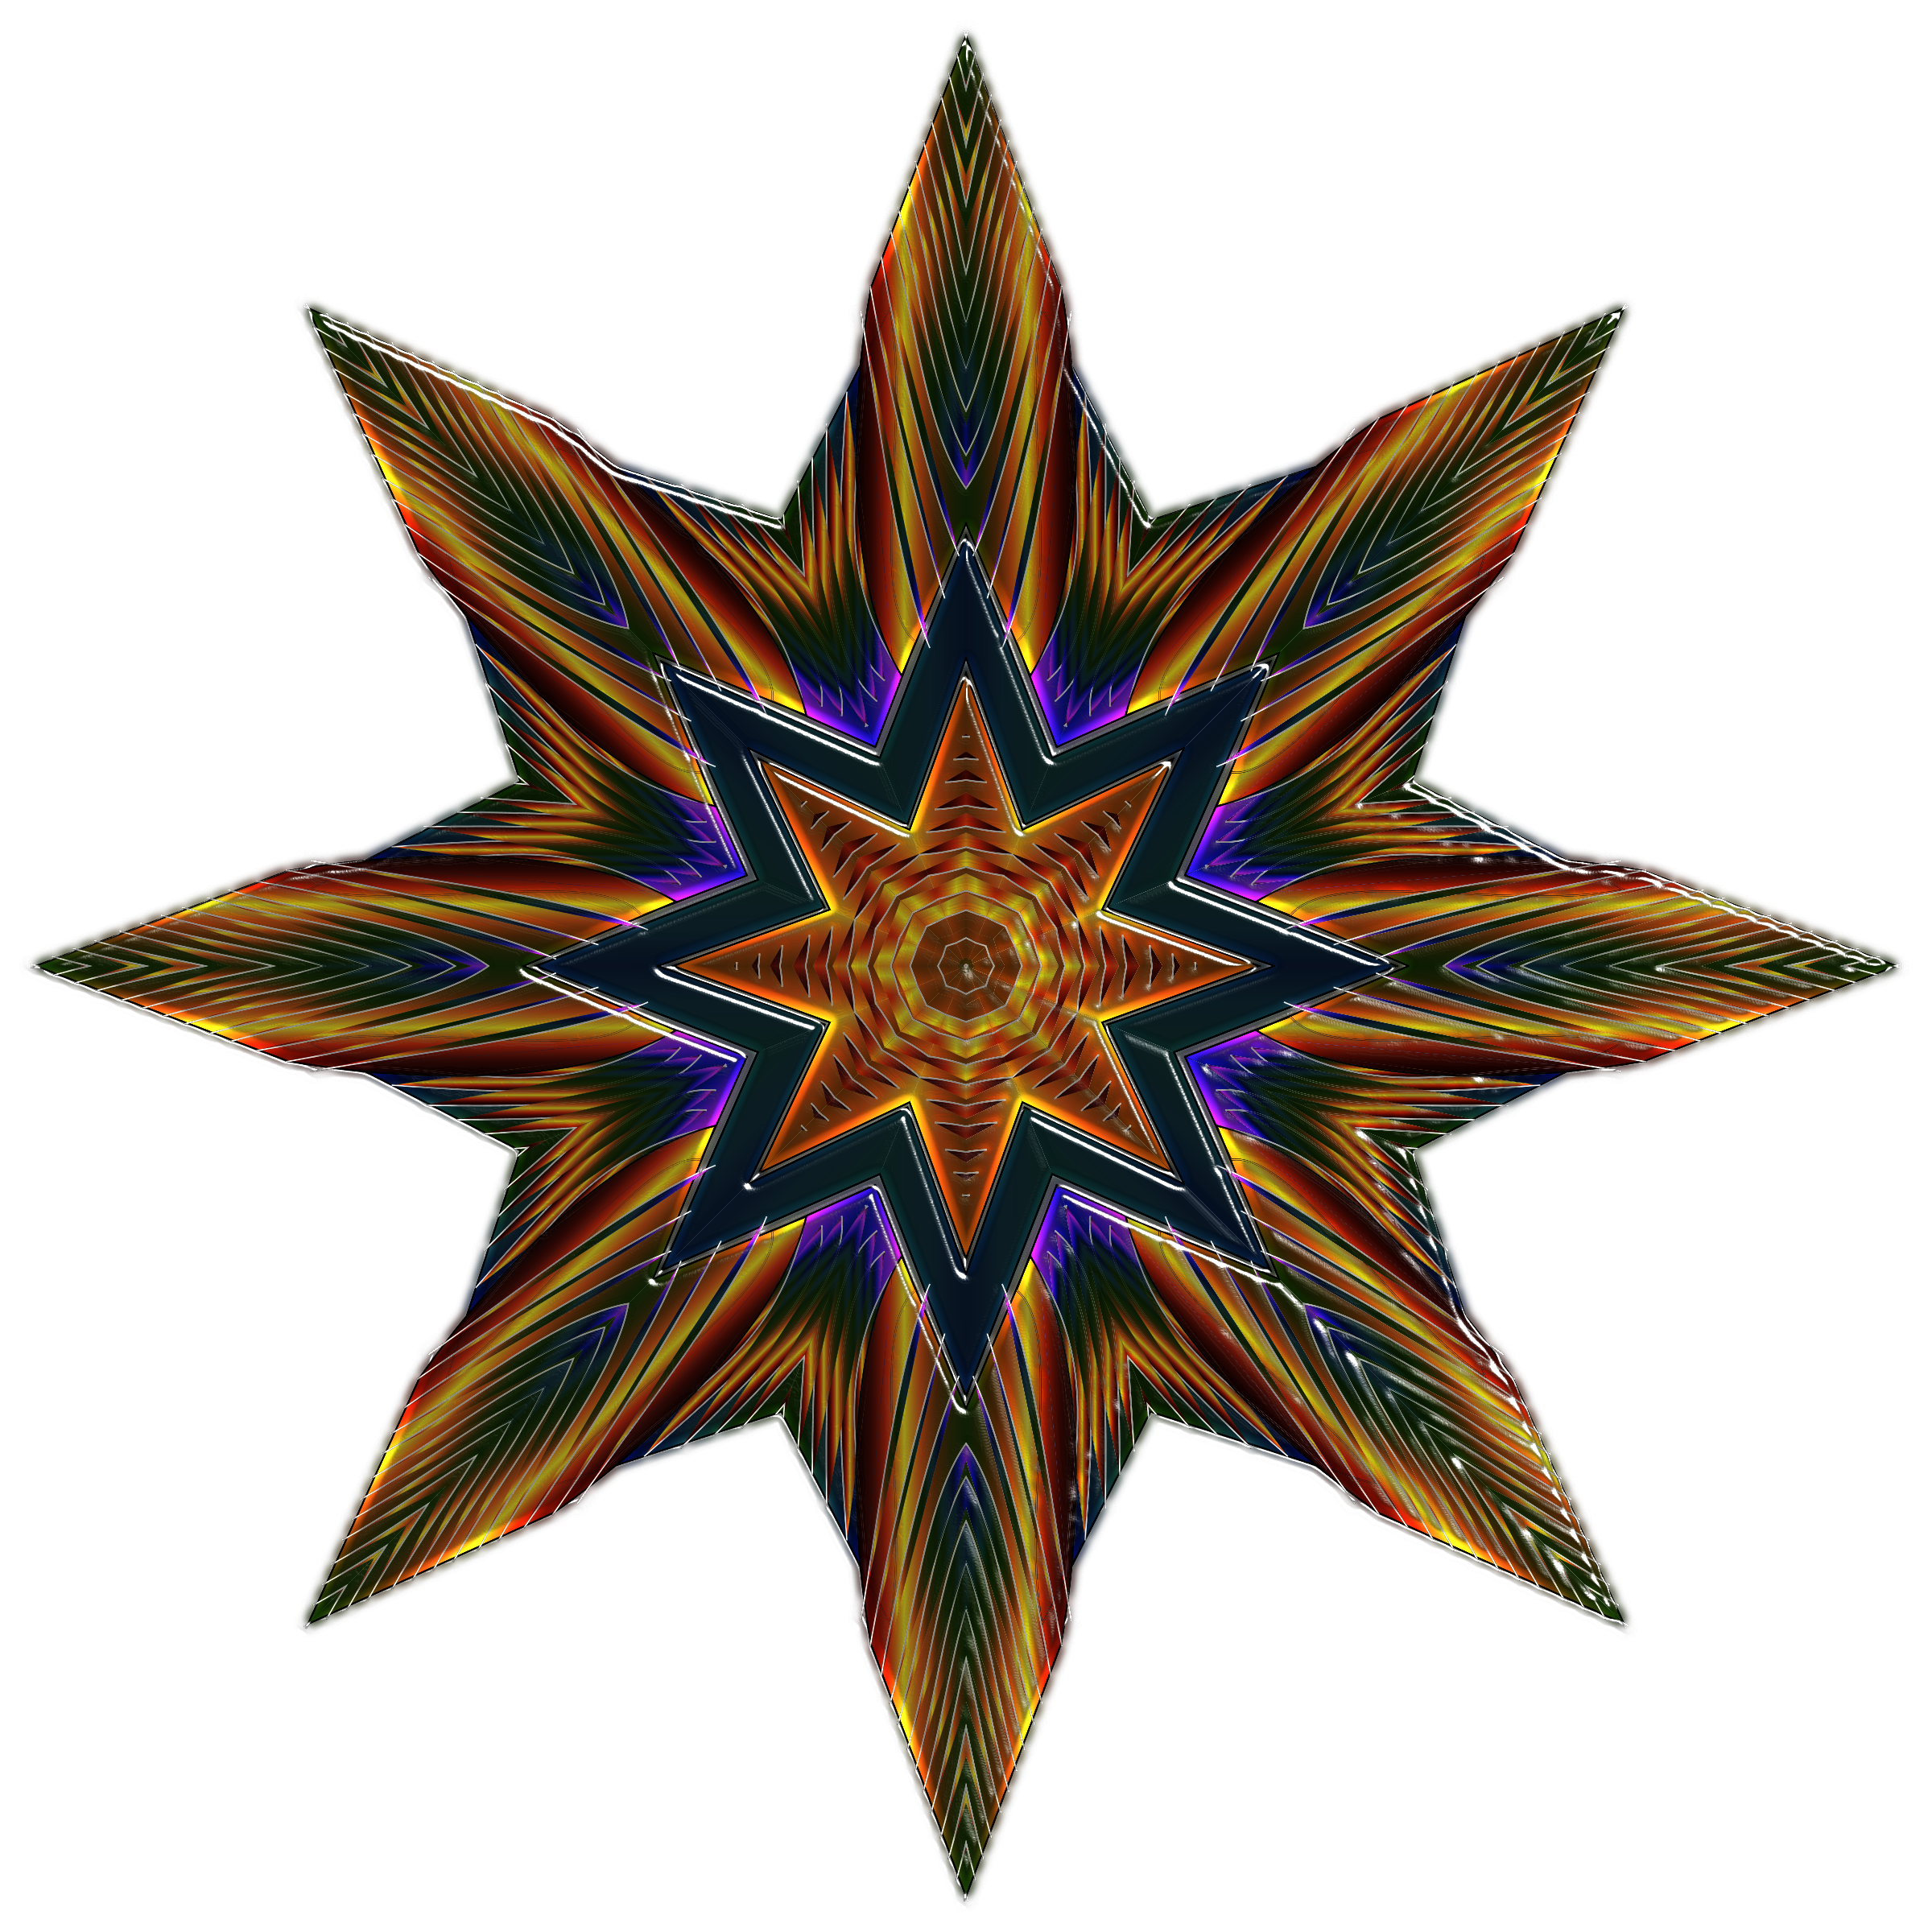 Ornate Star Variation 1 by GDJ